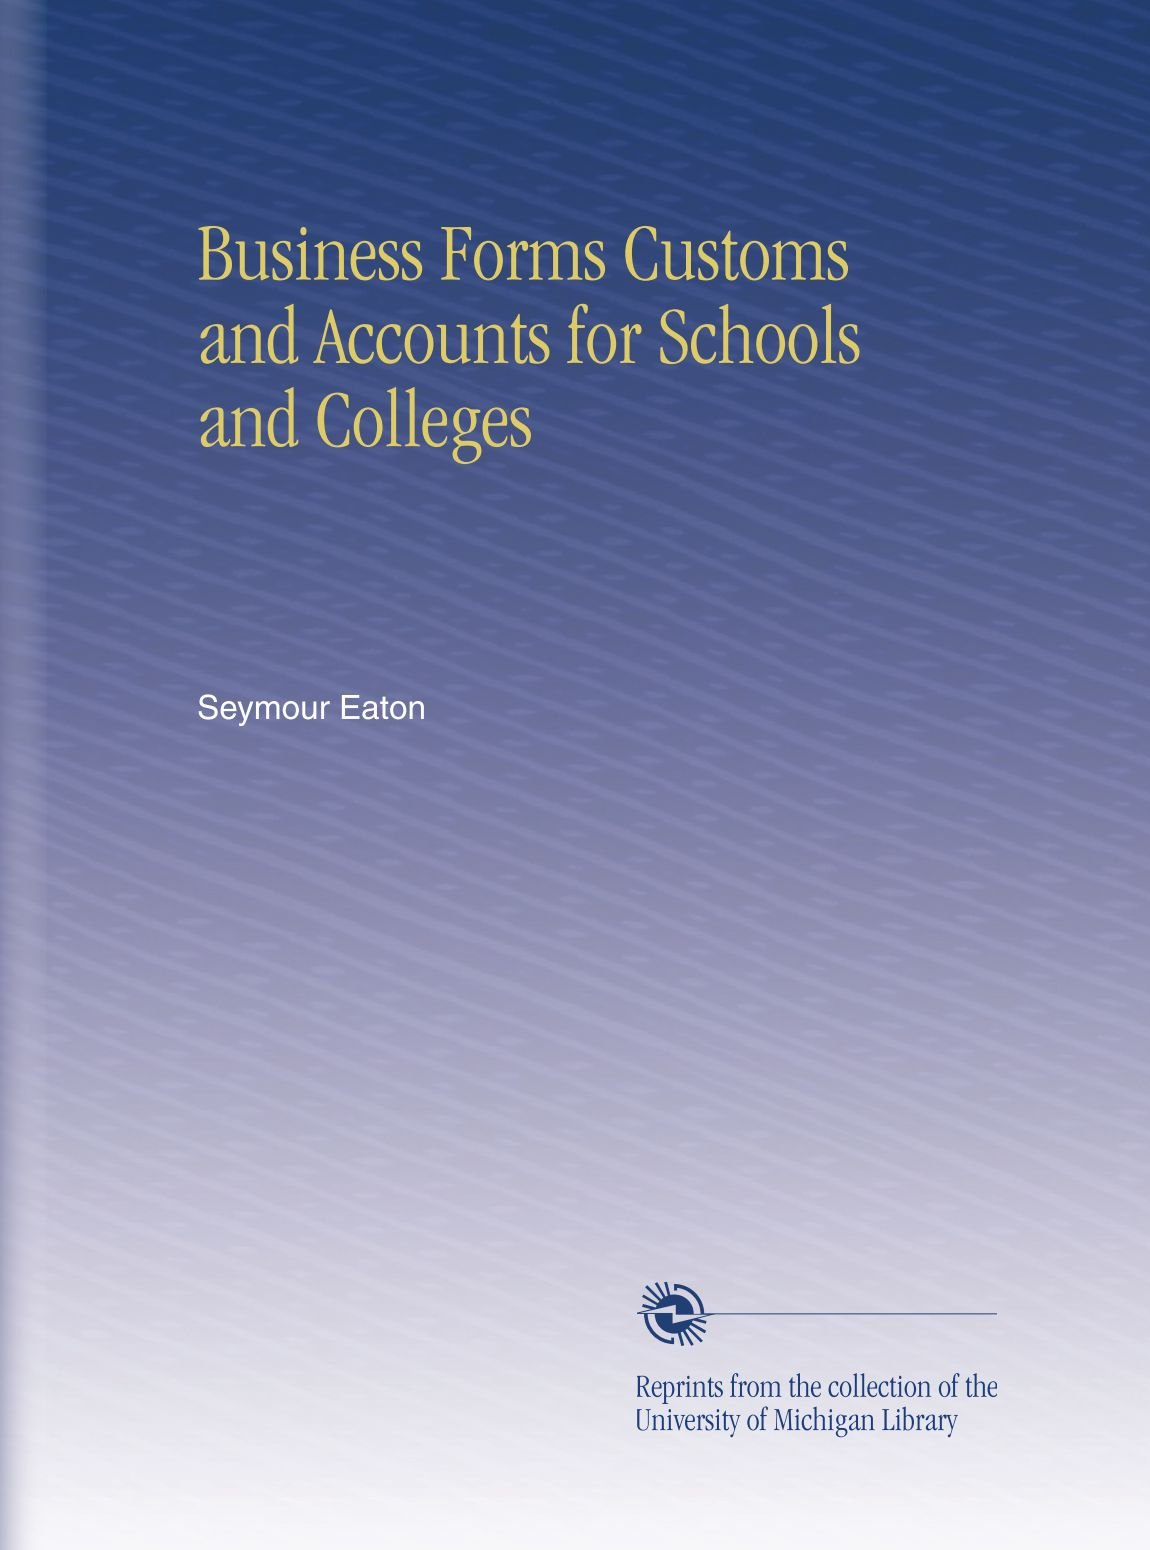 Business Forms Customs and Accounts for Schools and Colleges